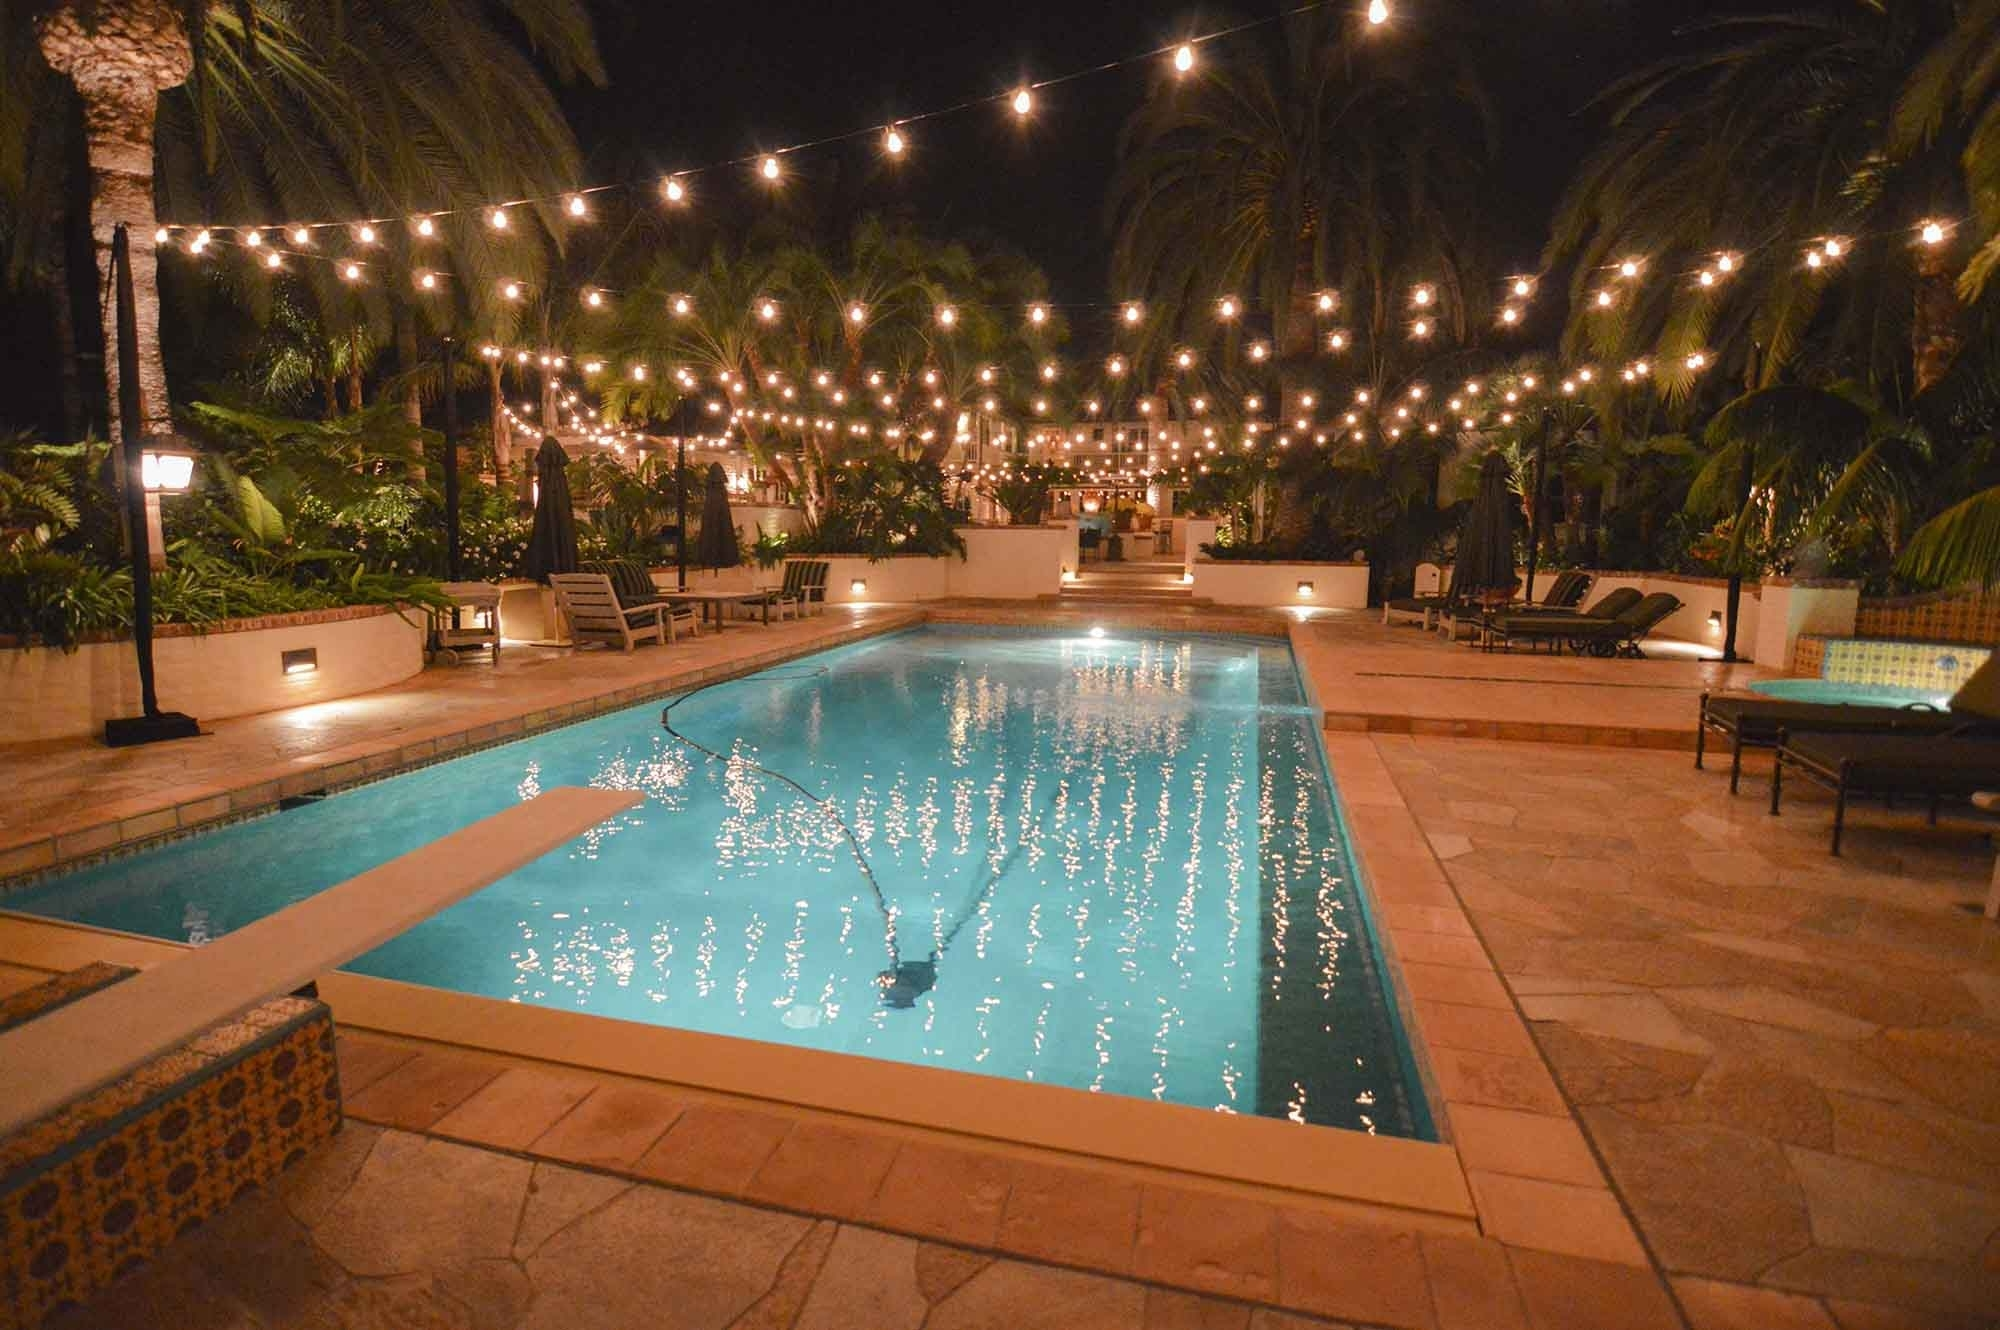 Market Lights, Party, Globe & Patio String Lights Outdoor For Most Popular Outdoor Pool Lanterns (View 9 of 20)